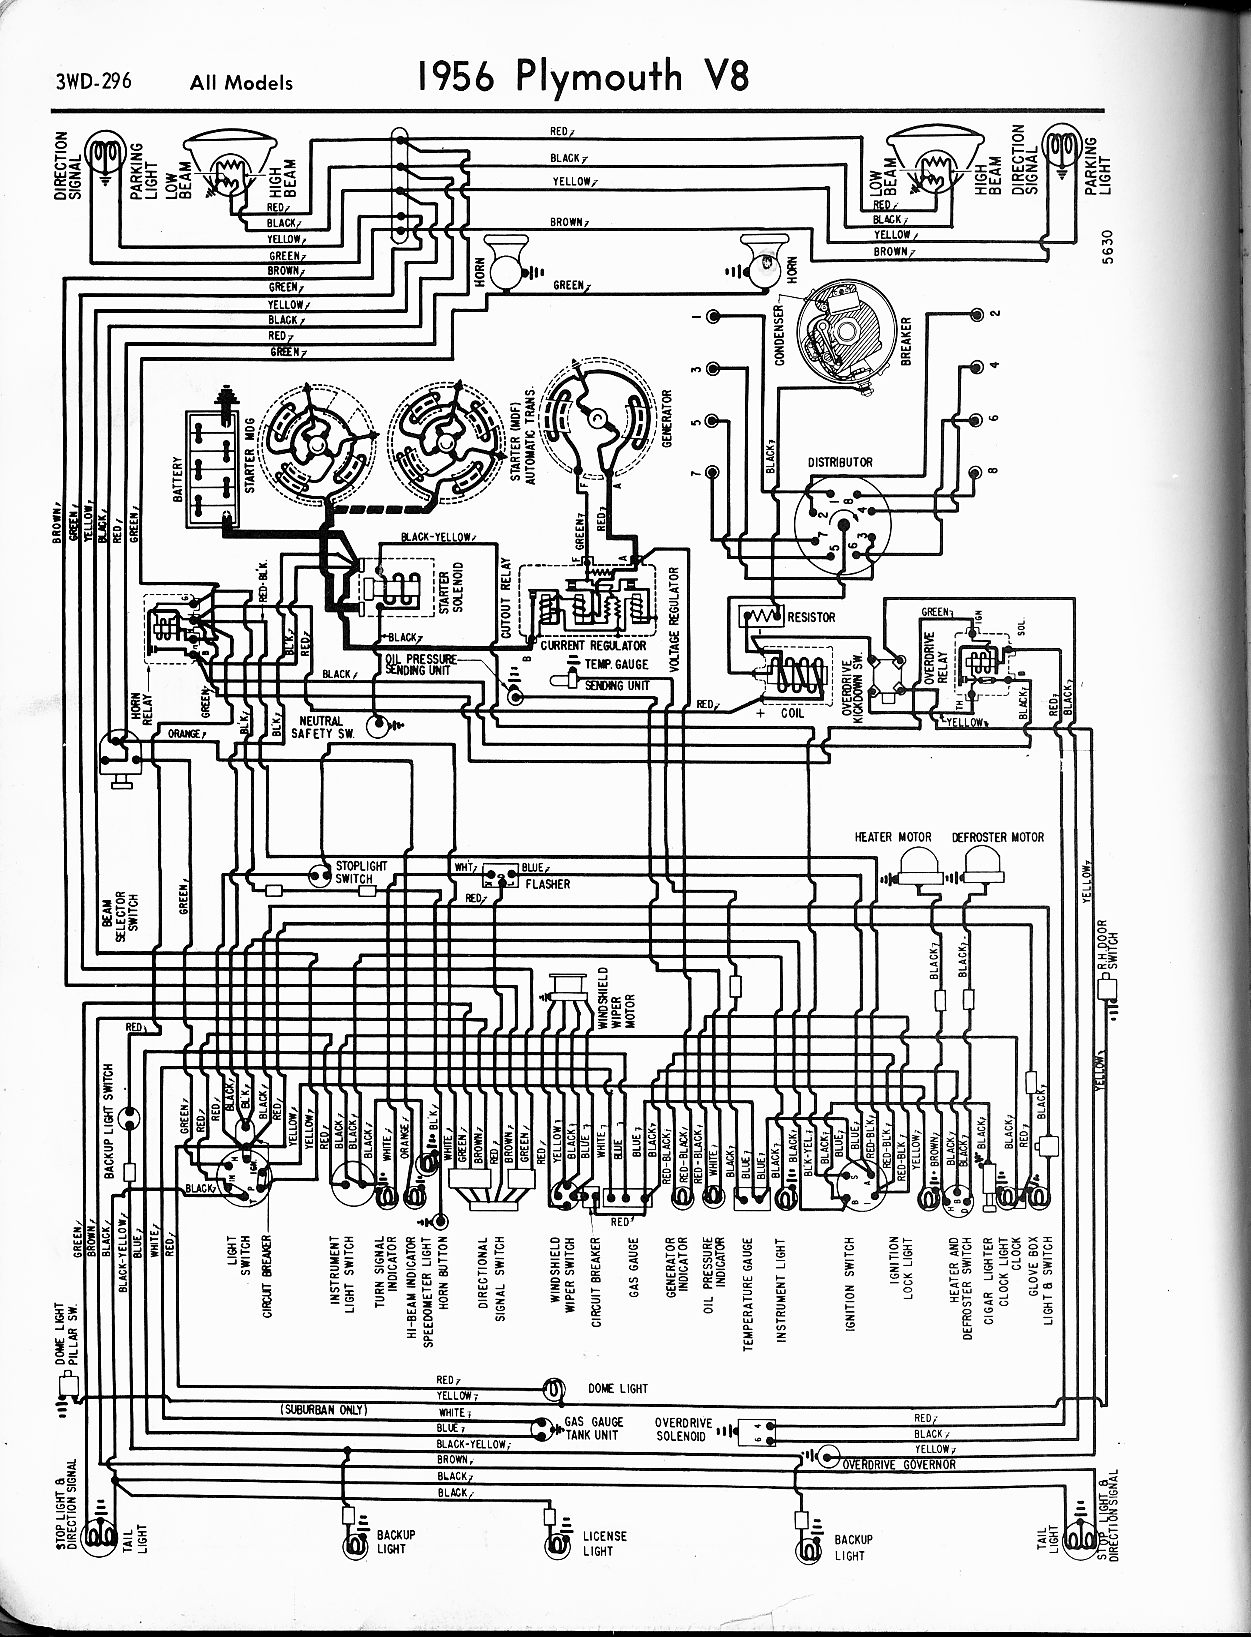 1940 Studebaker Wiring Diagram Schematic Library 2002 Ford F150 Manual Original 1956 1965 Plymouth The Old Car Project Chrysler Diagrams